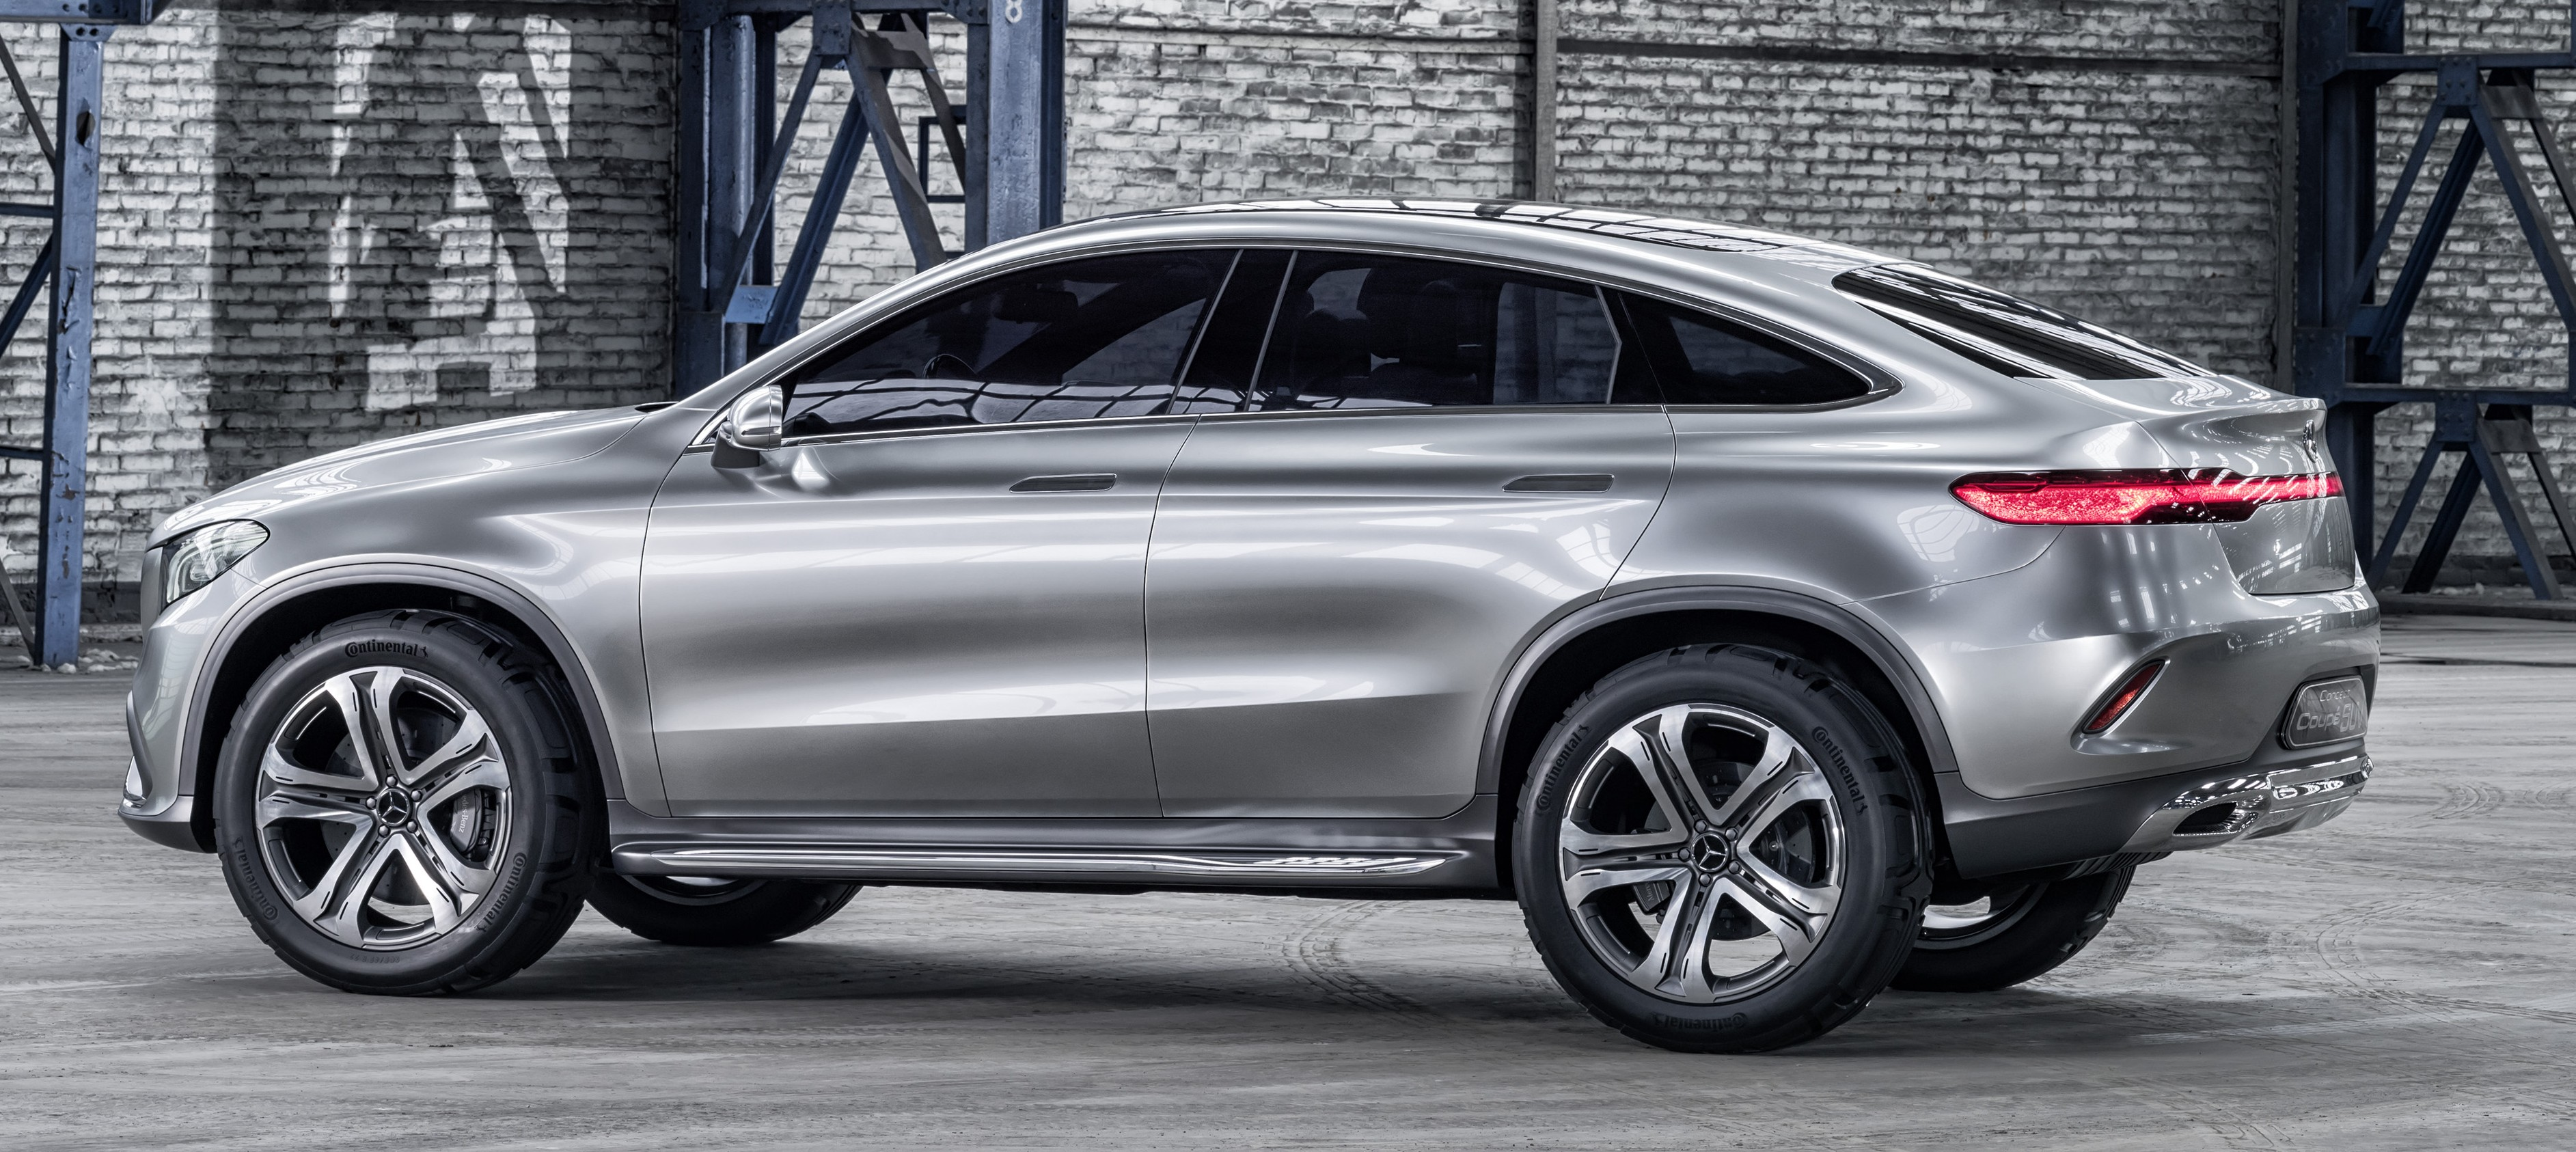 Mercedes benz coupe suv concept previews x6 rival paul tan for Mercedes benz coupe suv